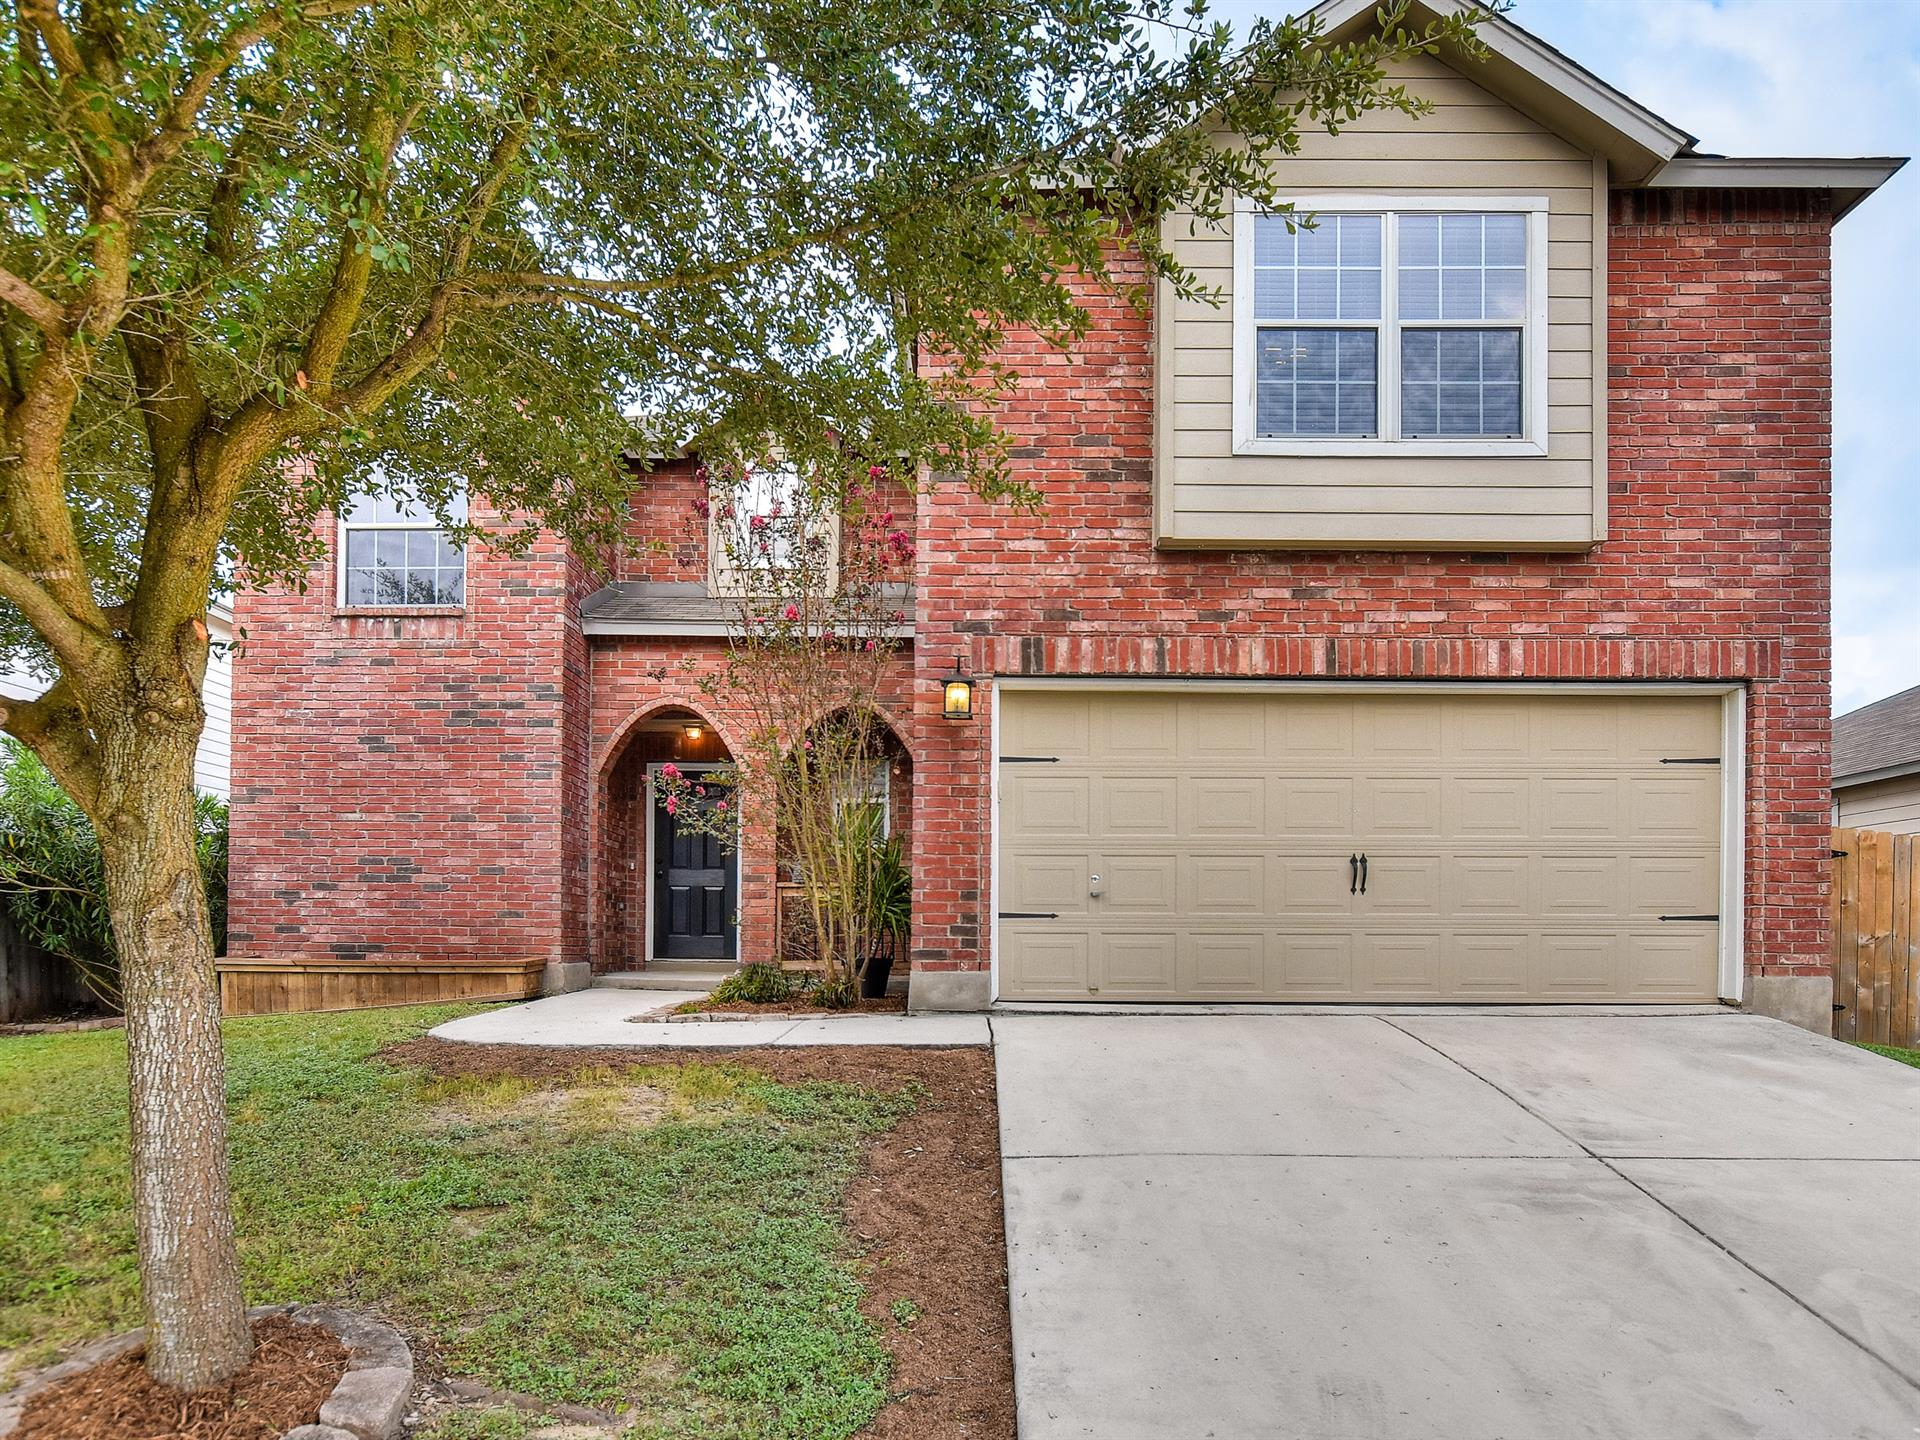 Additional photo for property listing at 8446 Dusty Ridge 8446 Dusty Ridge Converse, Texas 78109 Estados Unidos